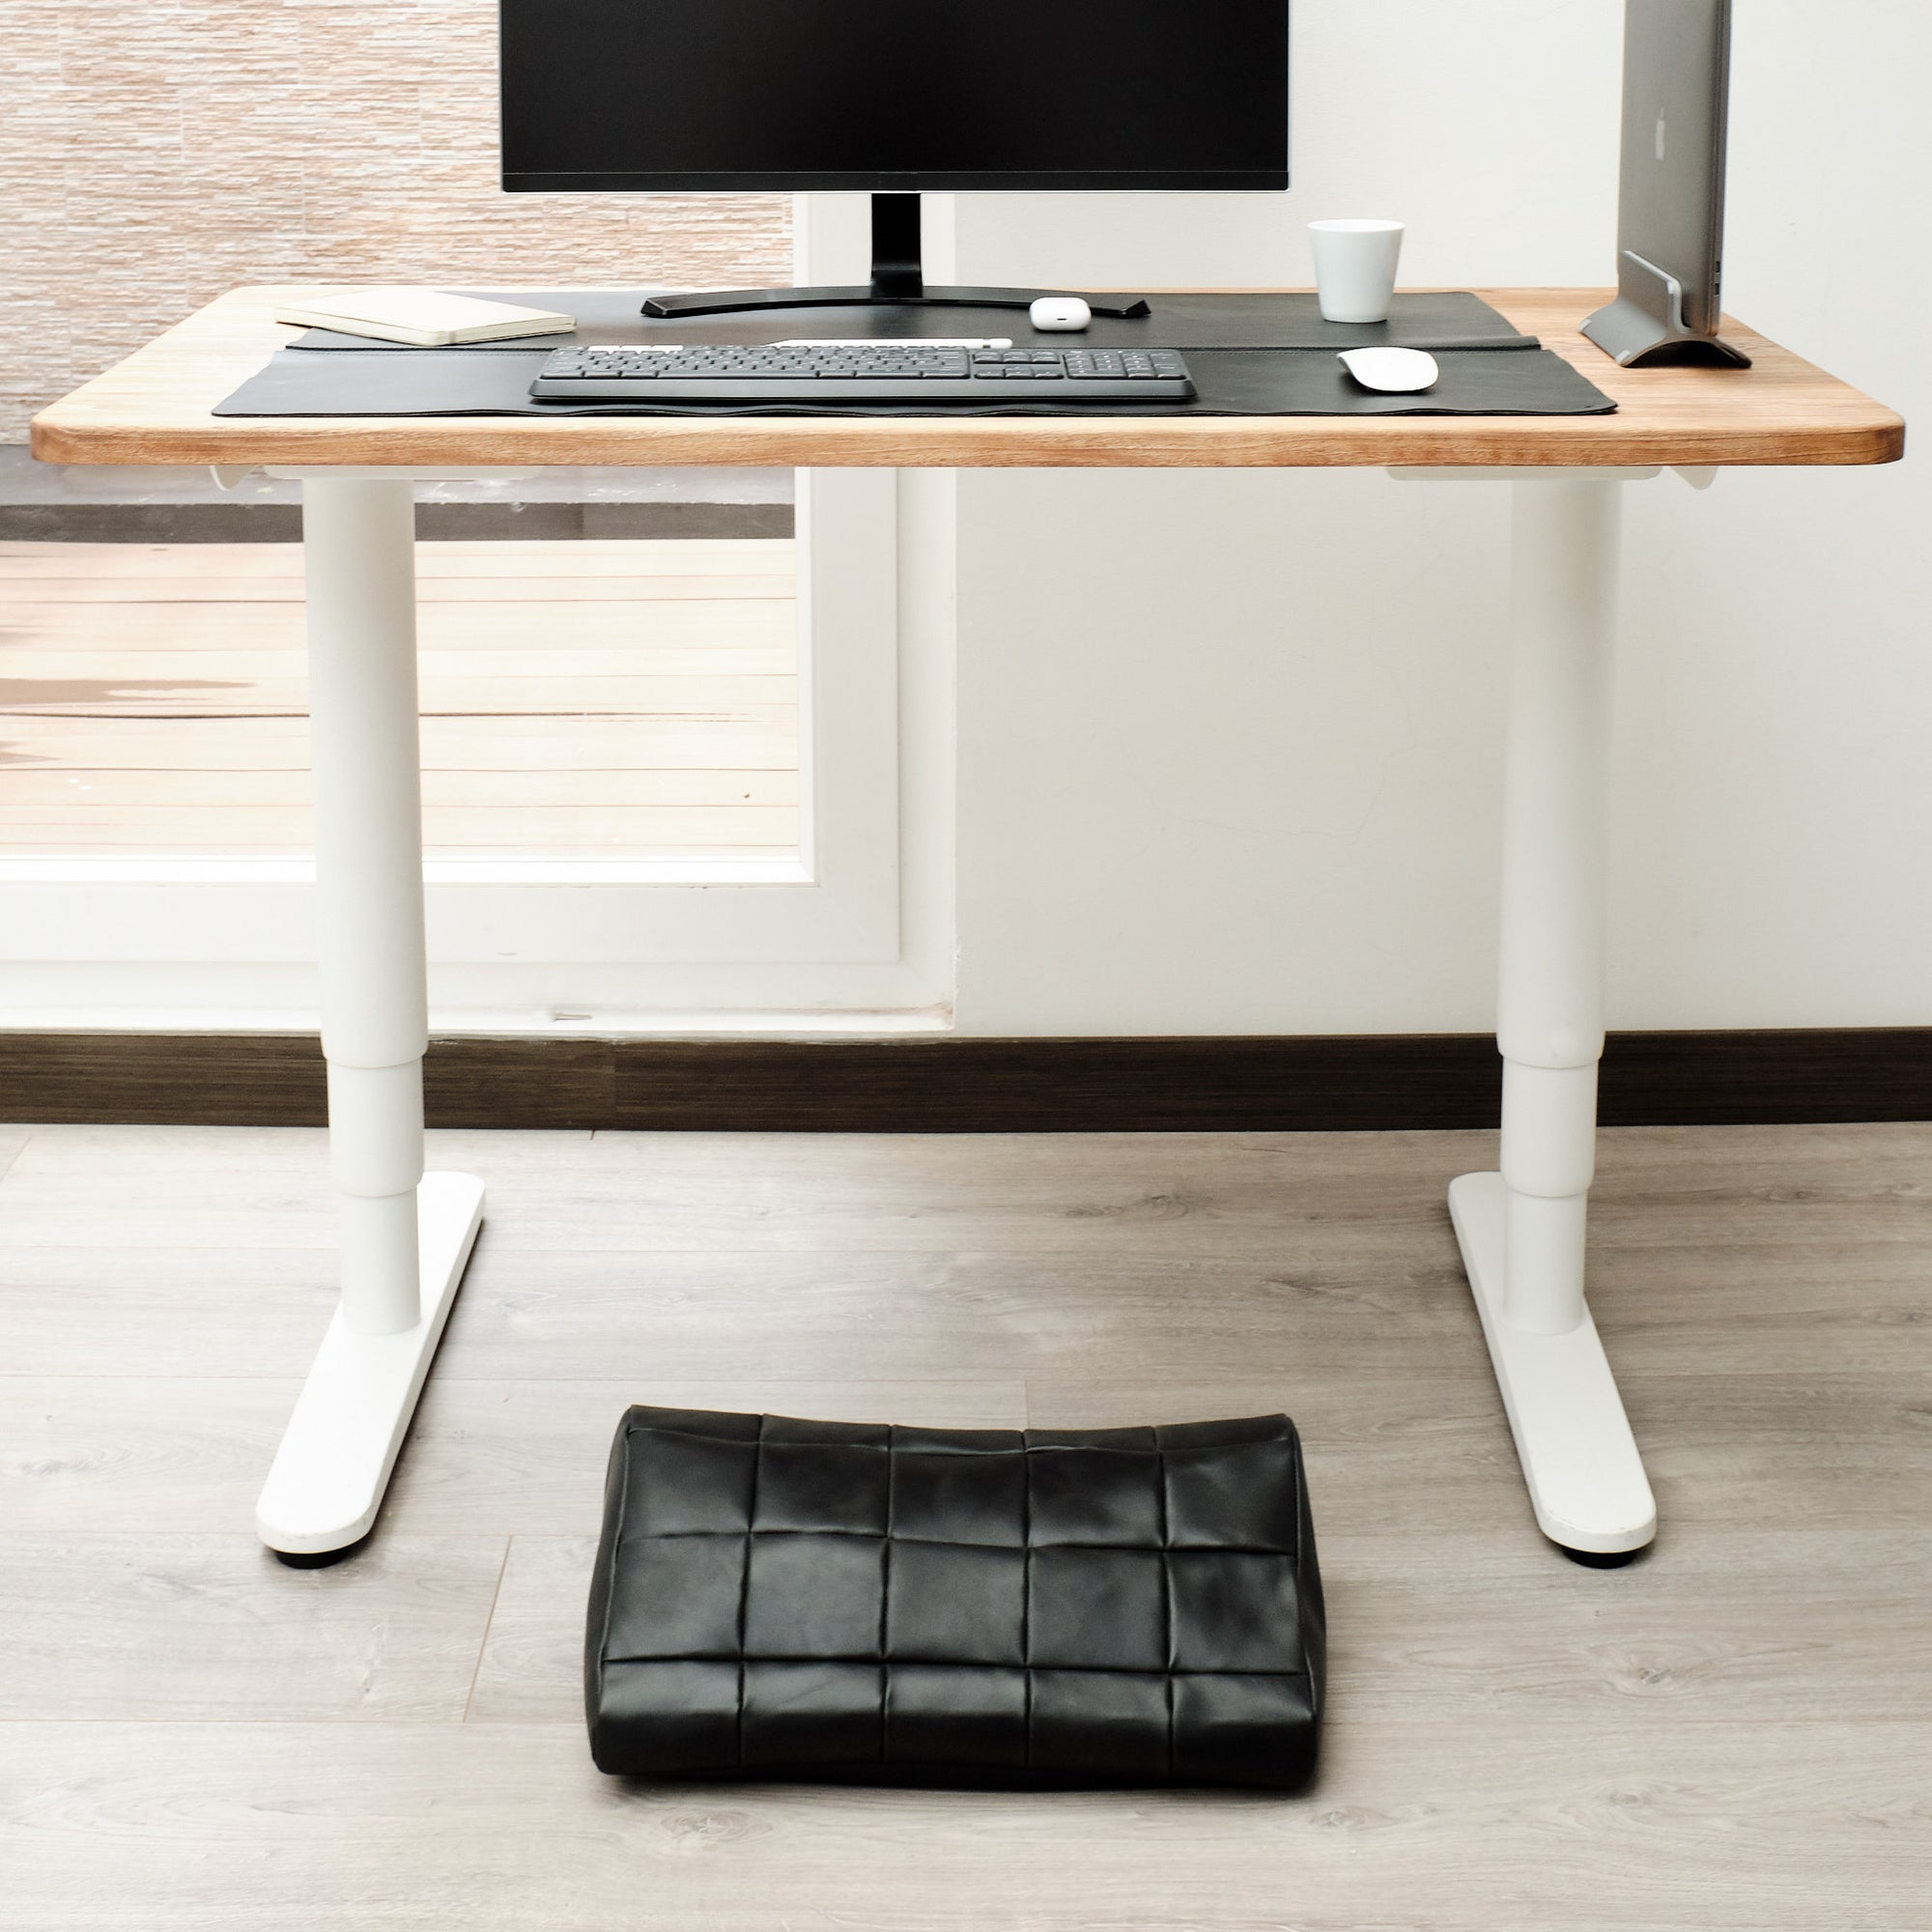 12x30. Desk Pad Black by Capra Leather